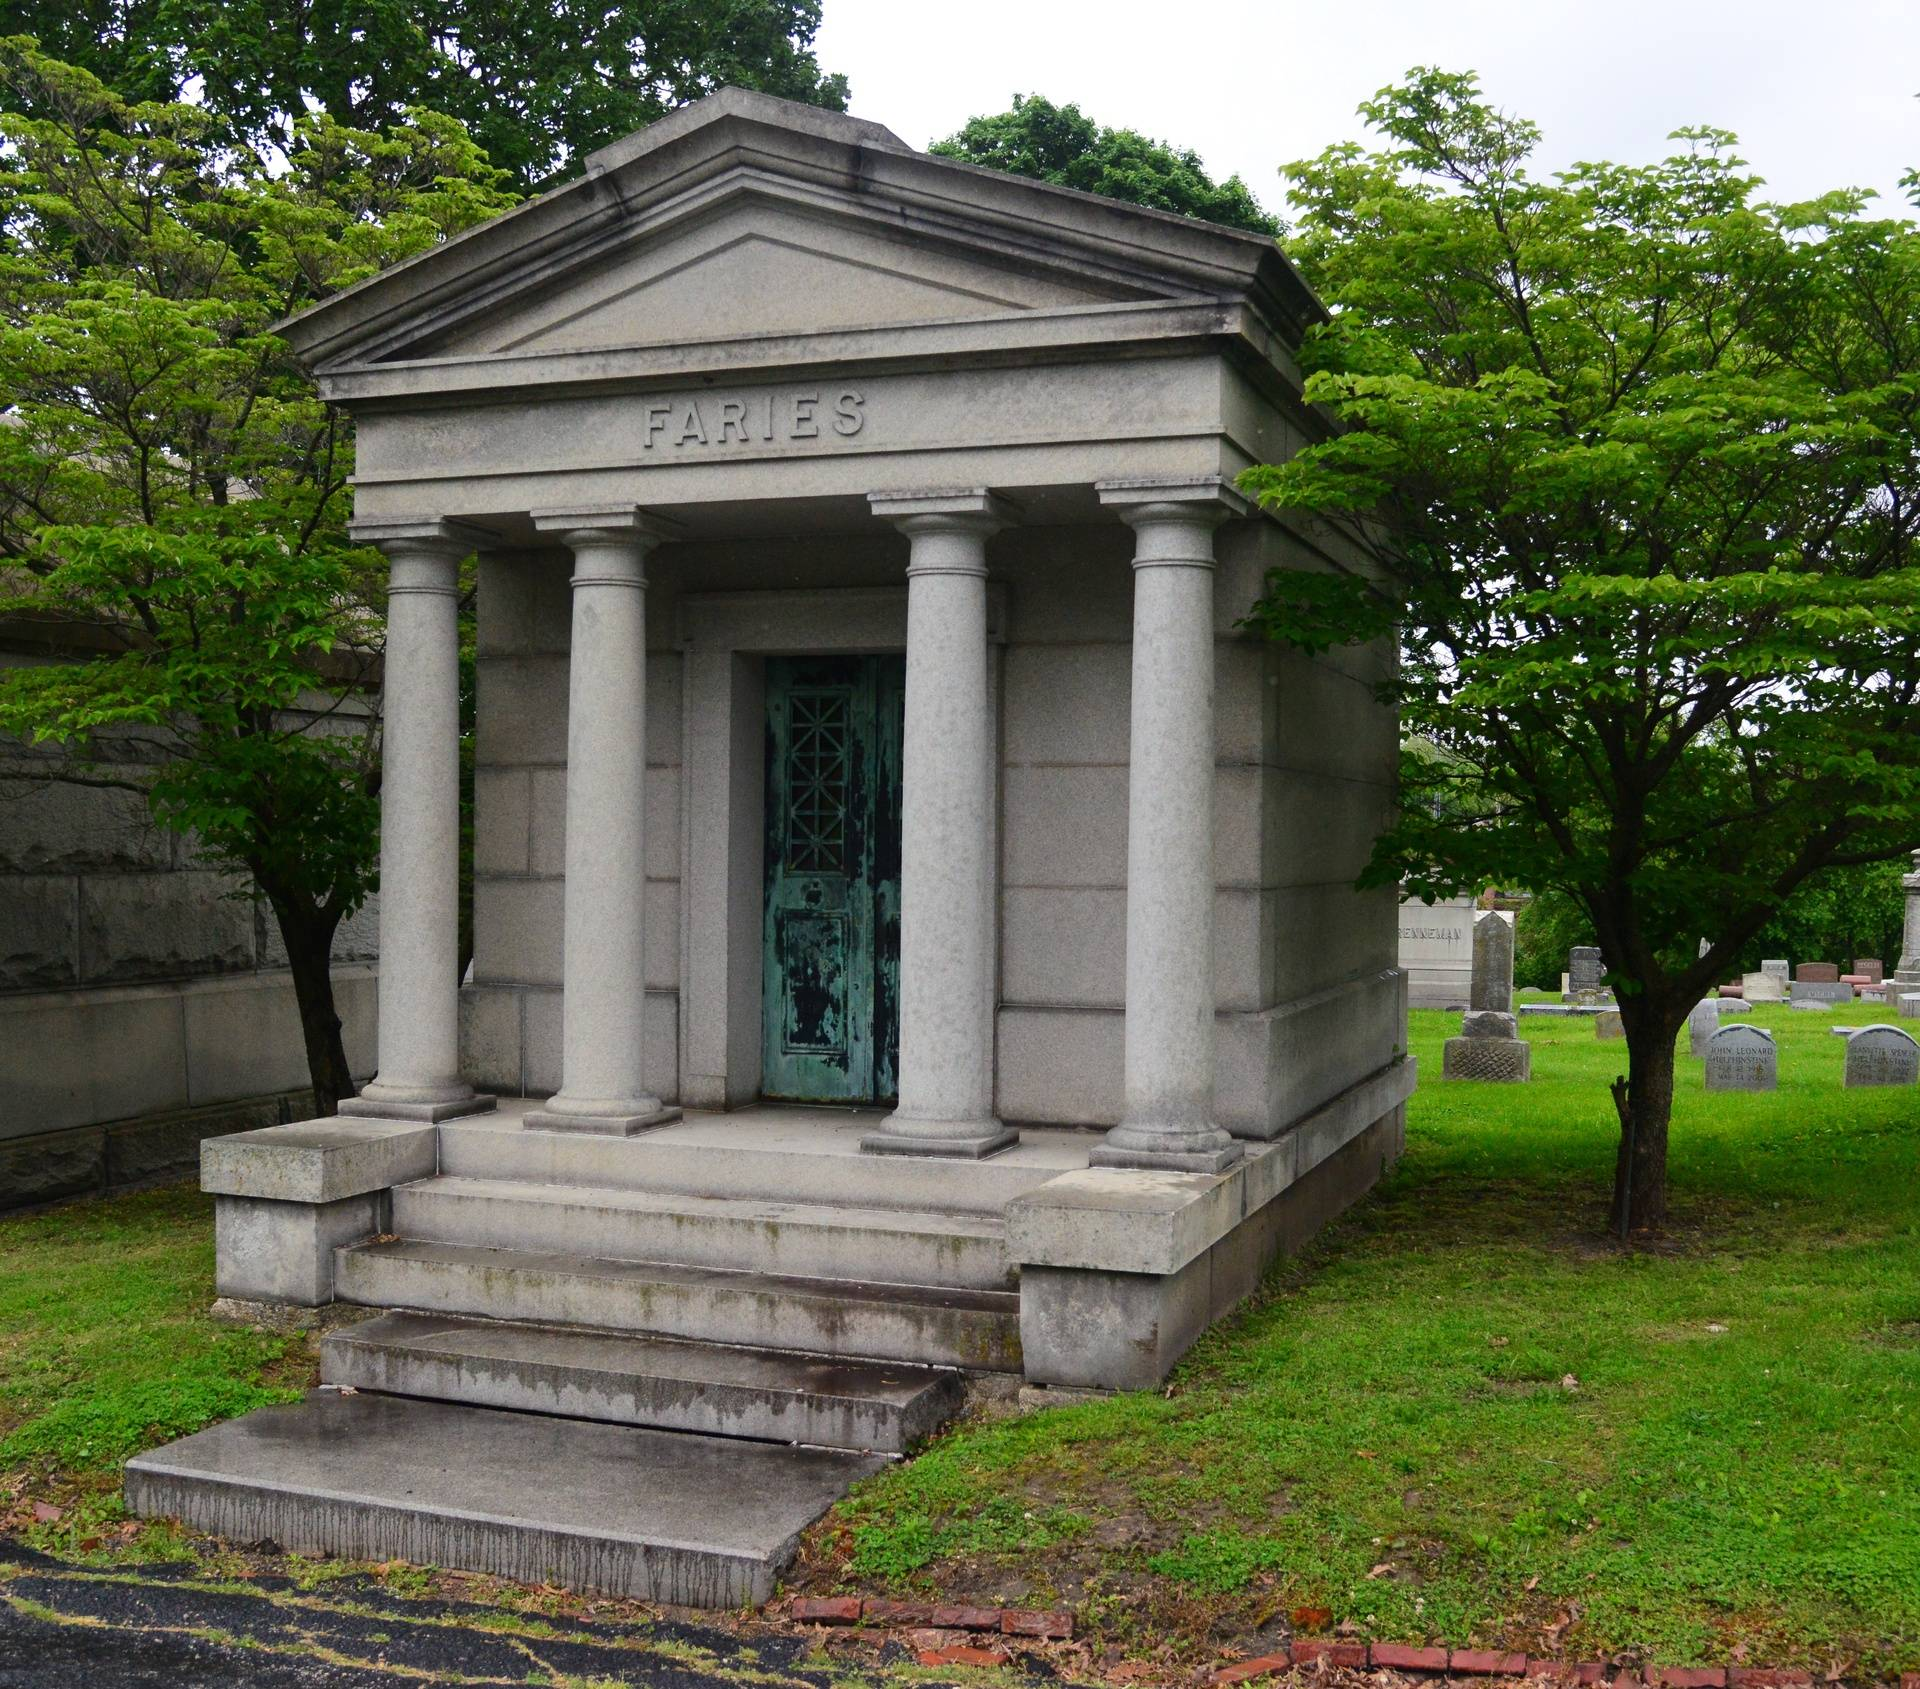 Faries Mausoleum at Greenwood Cemetery